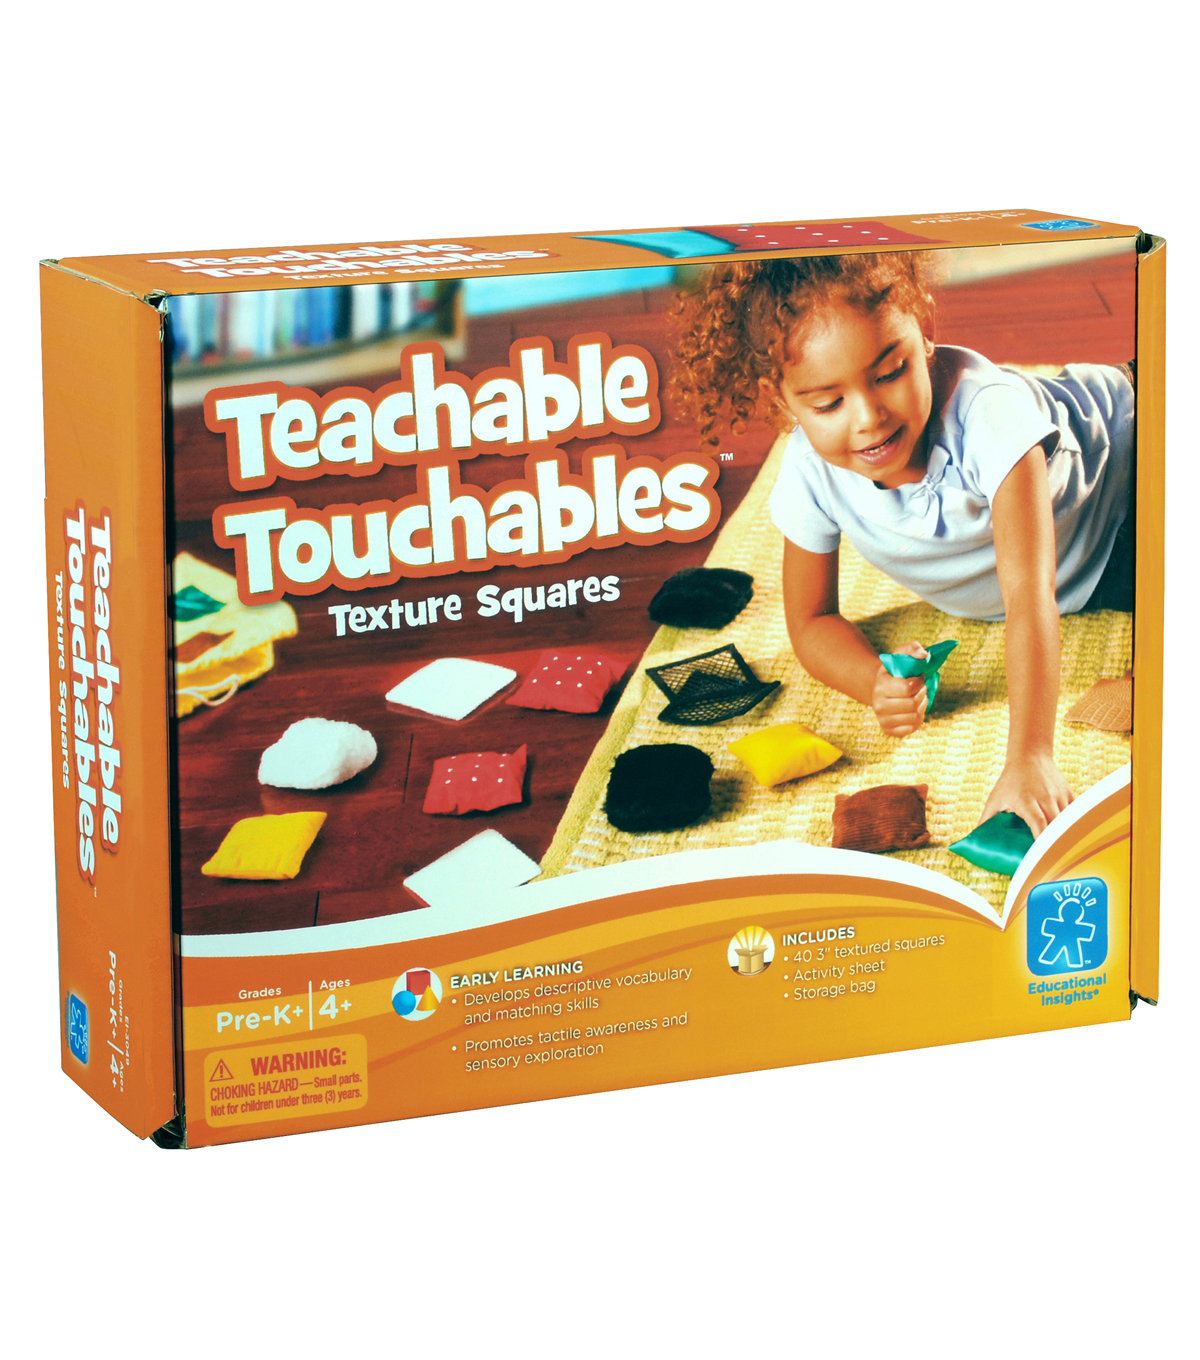 Teachable Touchables Texture Squares, 10/pkg